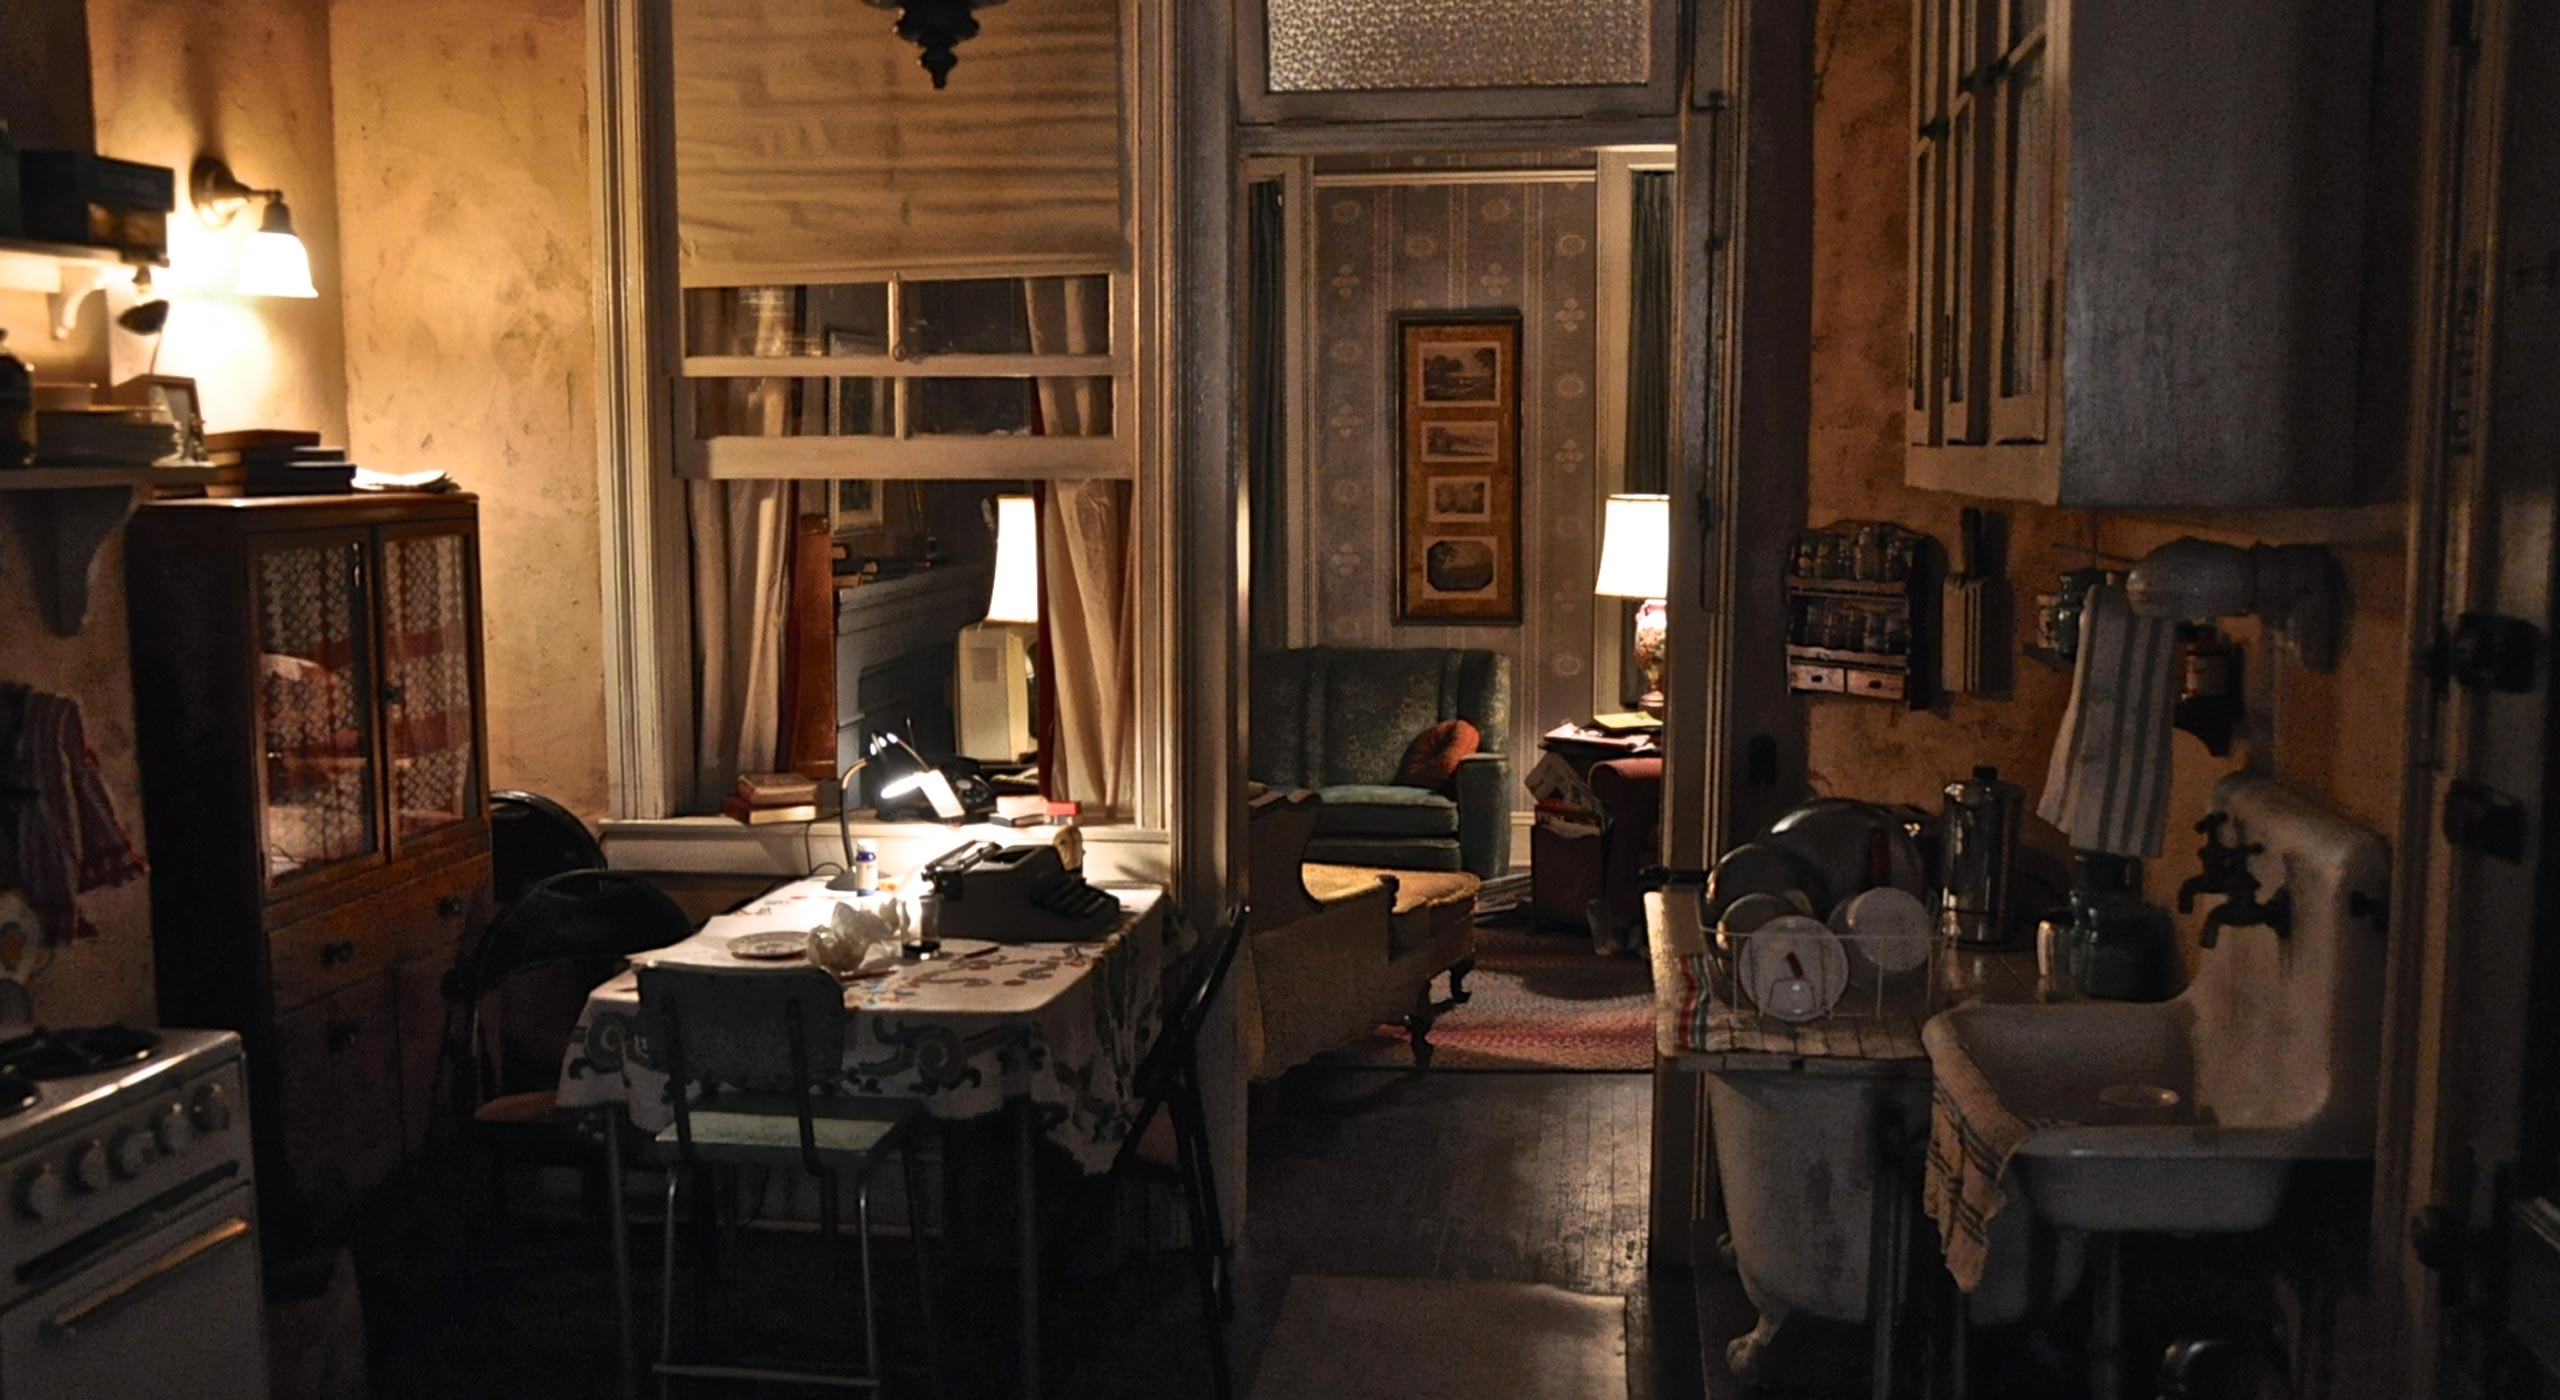 Ginsberg apartment (1966, inspired by Lower East Side tenements):  Those pass-through windows—the one between the kitchen and the parlor—came about because there were fire laws and city codes that declared you must be able to get air into those interior rooms, so people installed them later.  —Dan Bishop